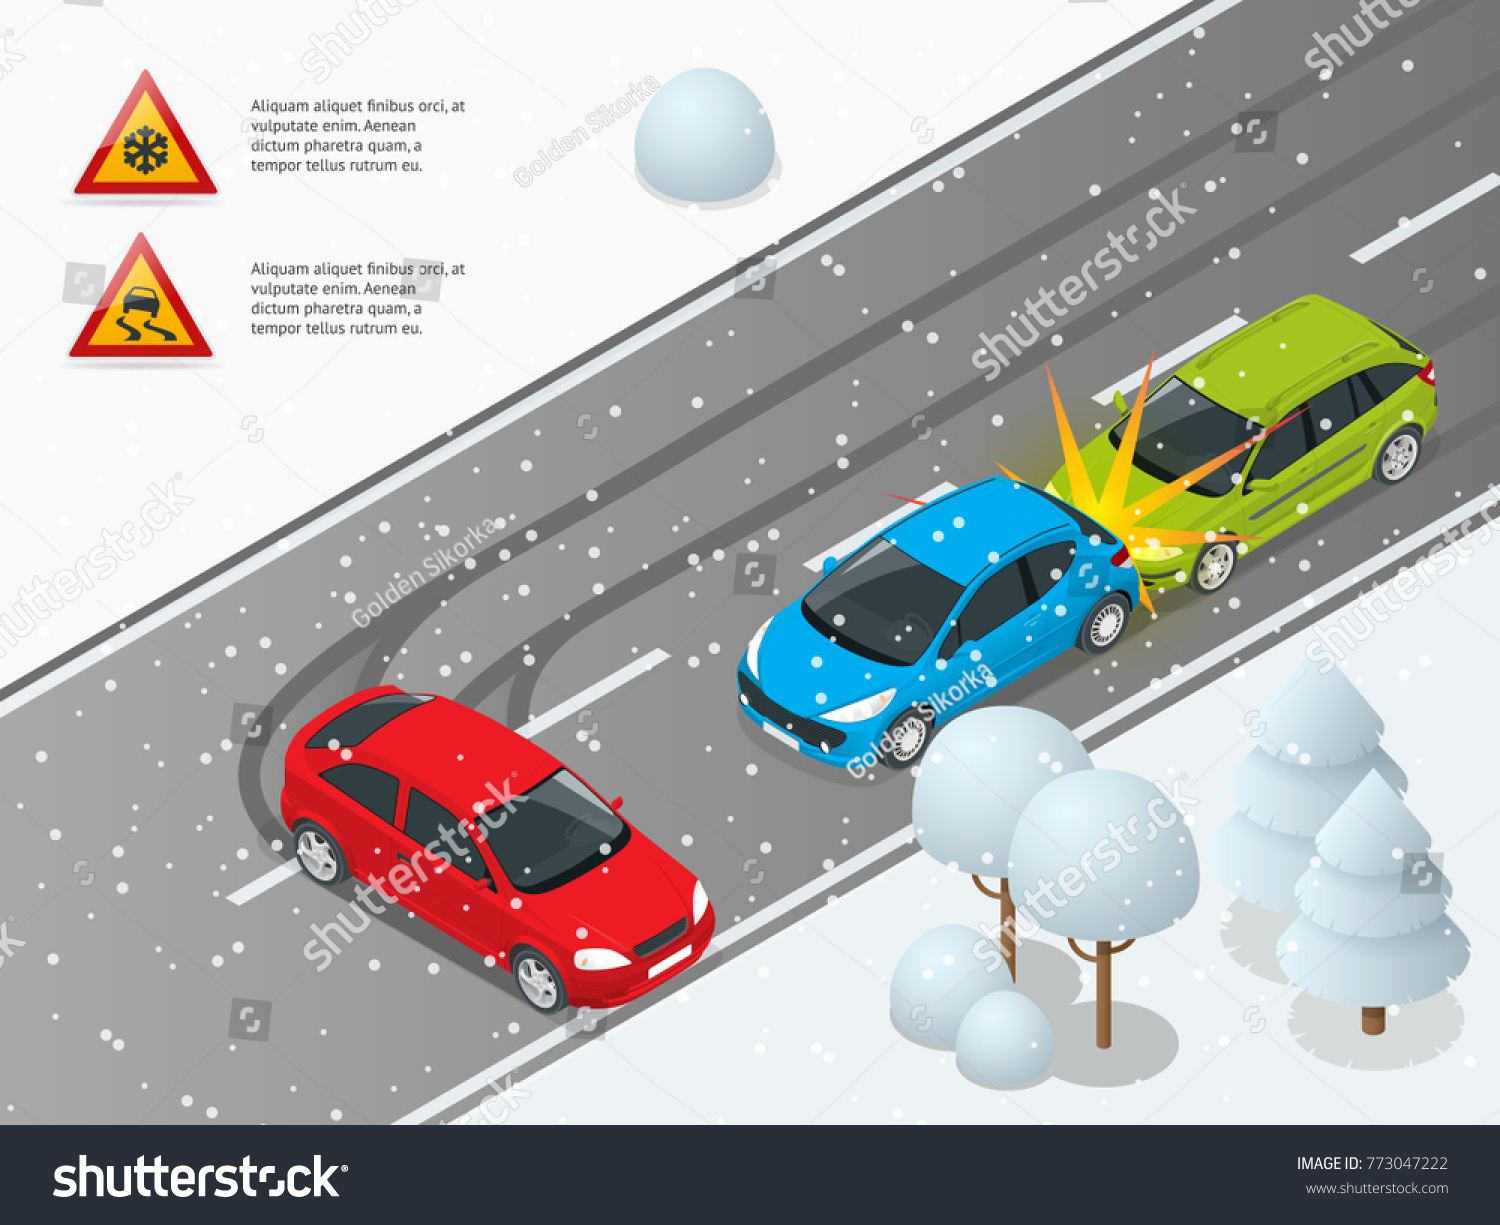 edfd23b34b Isometric Winter Slippery Road Car Accident Stock Vector (Royalty ...